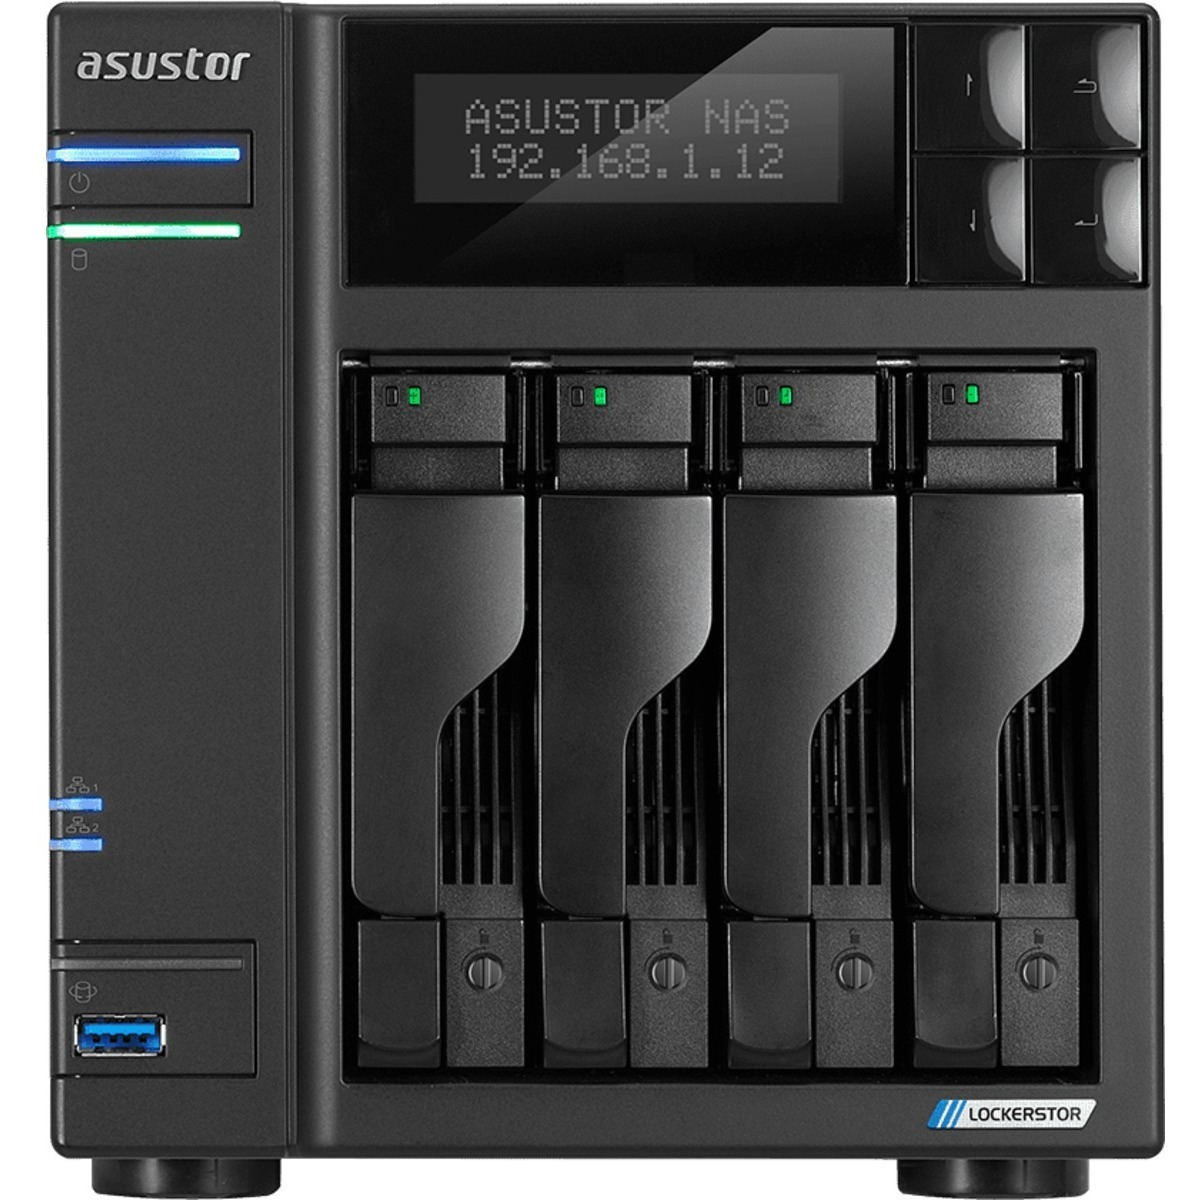 buy $1179 ASUSTOR AS6604T Lockerstor 4 8tb Desktop NAS - Network Attached Storage Device 4x2000gb Western Digital Gold WD2005FBYZ 3.5 7200rpm SATA 6Gb/s HDD ENTERPRISE Class Drives Installed - Burn-In Tested - FREE RAM UPGRADE - nas headquarters buy network attached storage server device das new raid-5 free shipping usa black friday cyber monday week month christmas holiday sale AS6604T Lockerstor 4